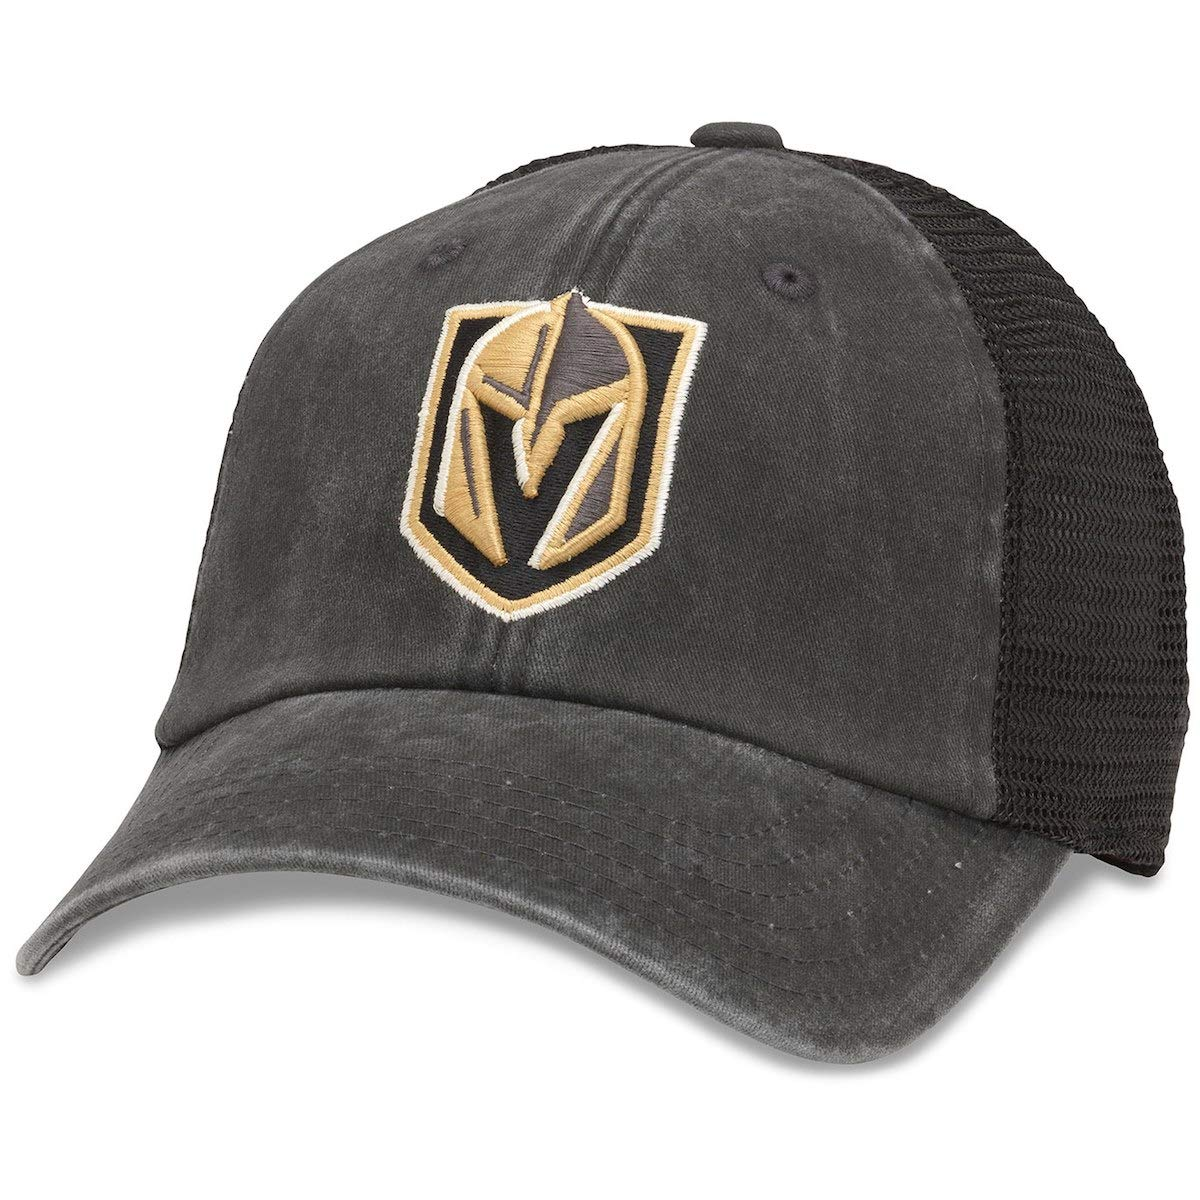 American Needle Vegas Golden Knights Raglan Bones Mesh Back Trucker Adjustable Strapback Hat